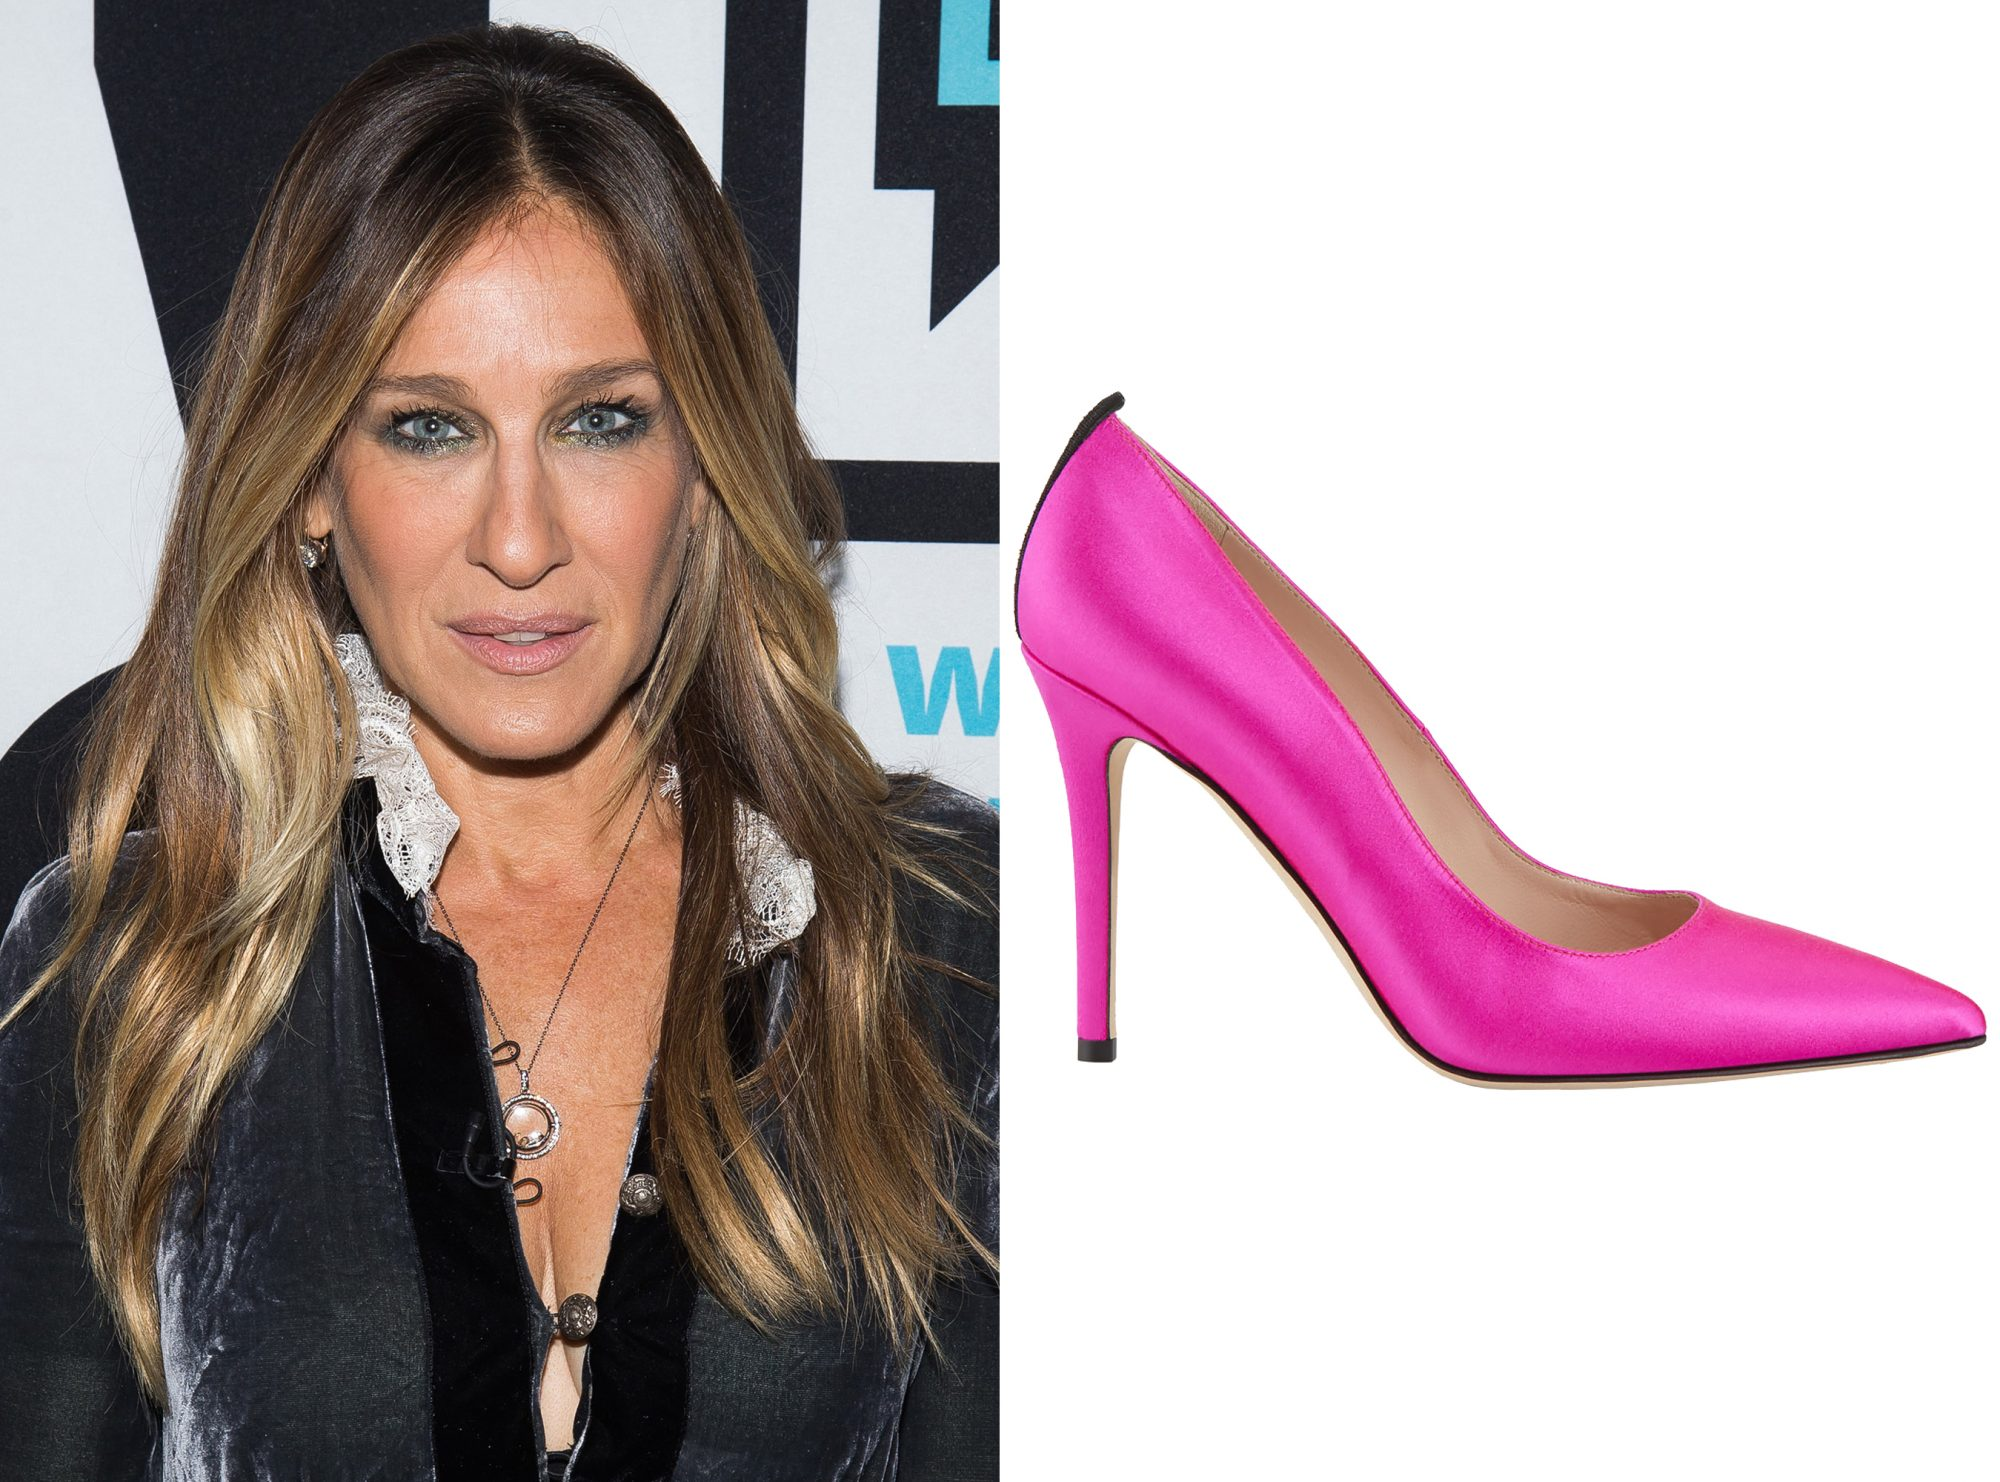 SJP Collection: Sarah Jessica Parker